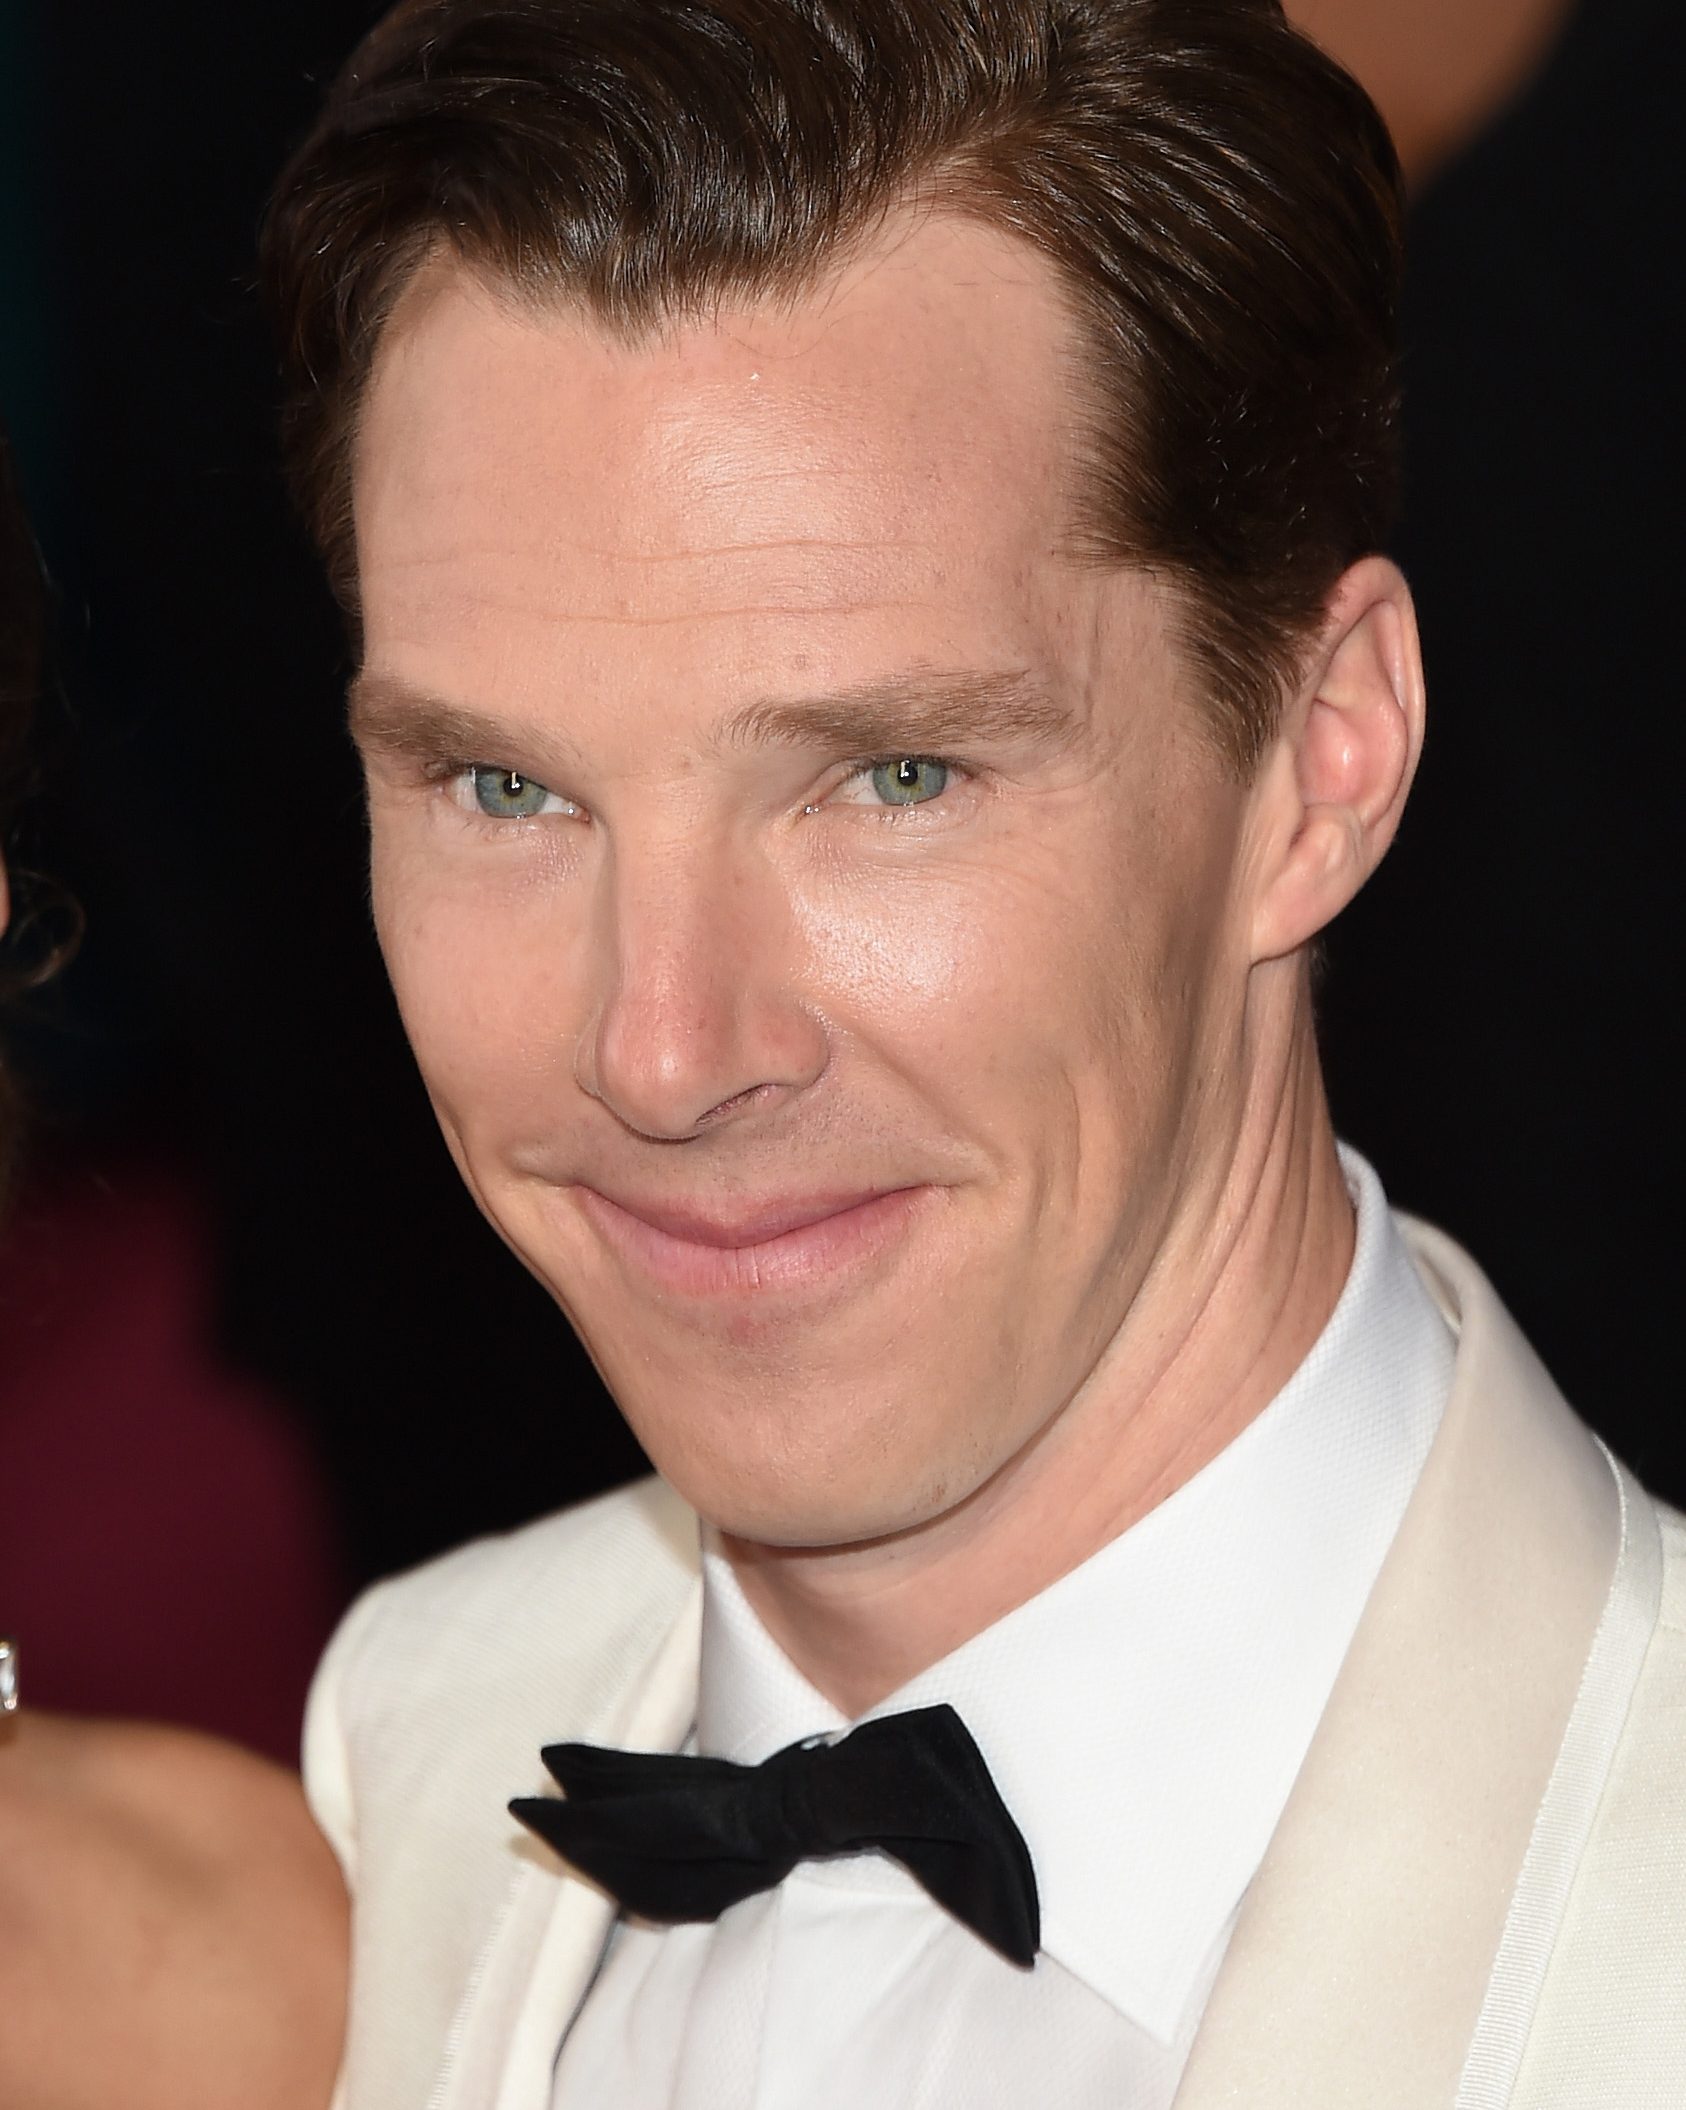 celebrity-wedding-officiants-benedict-cumberbatch-1015.jpg